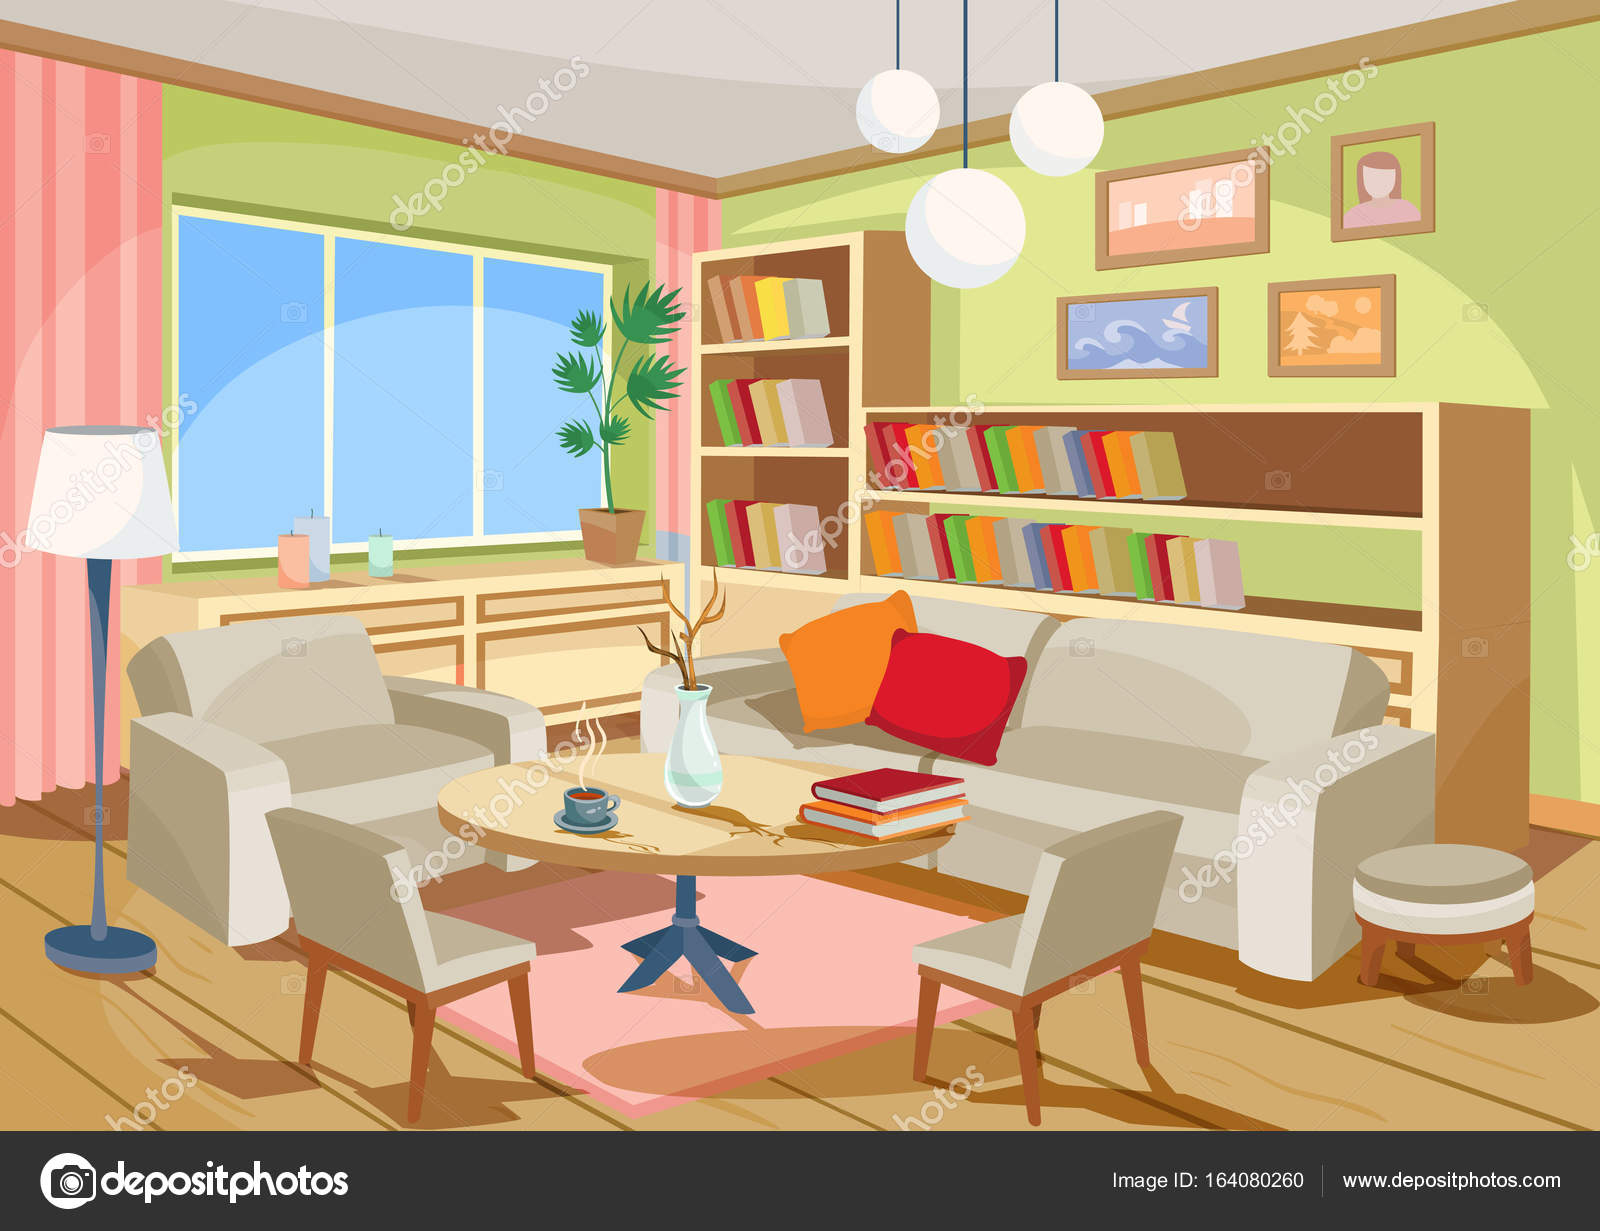 Sensational Vector Illustration Of A Cozy Cartoon Interior Of A Home Interior Design Ideas Gresisoteloinfo